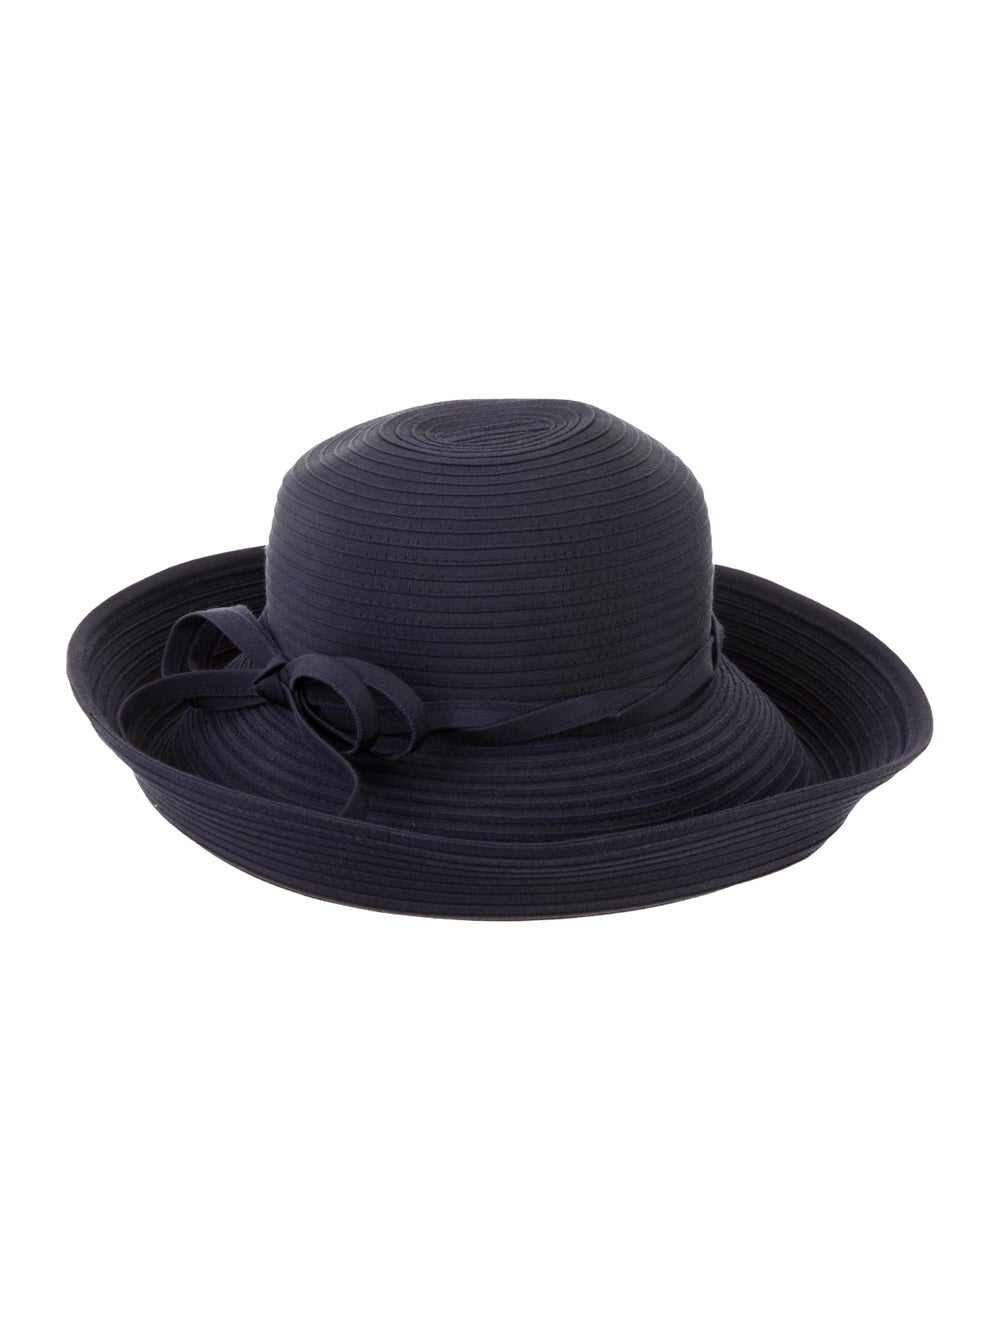 Eric Javits Wide-Brimmed Woven Hat Navy - image 2